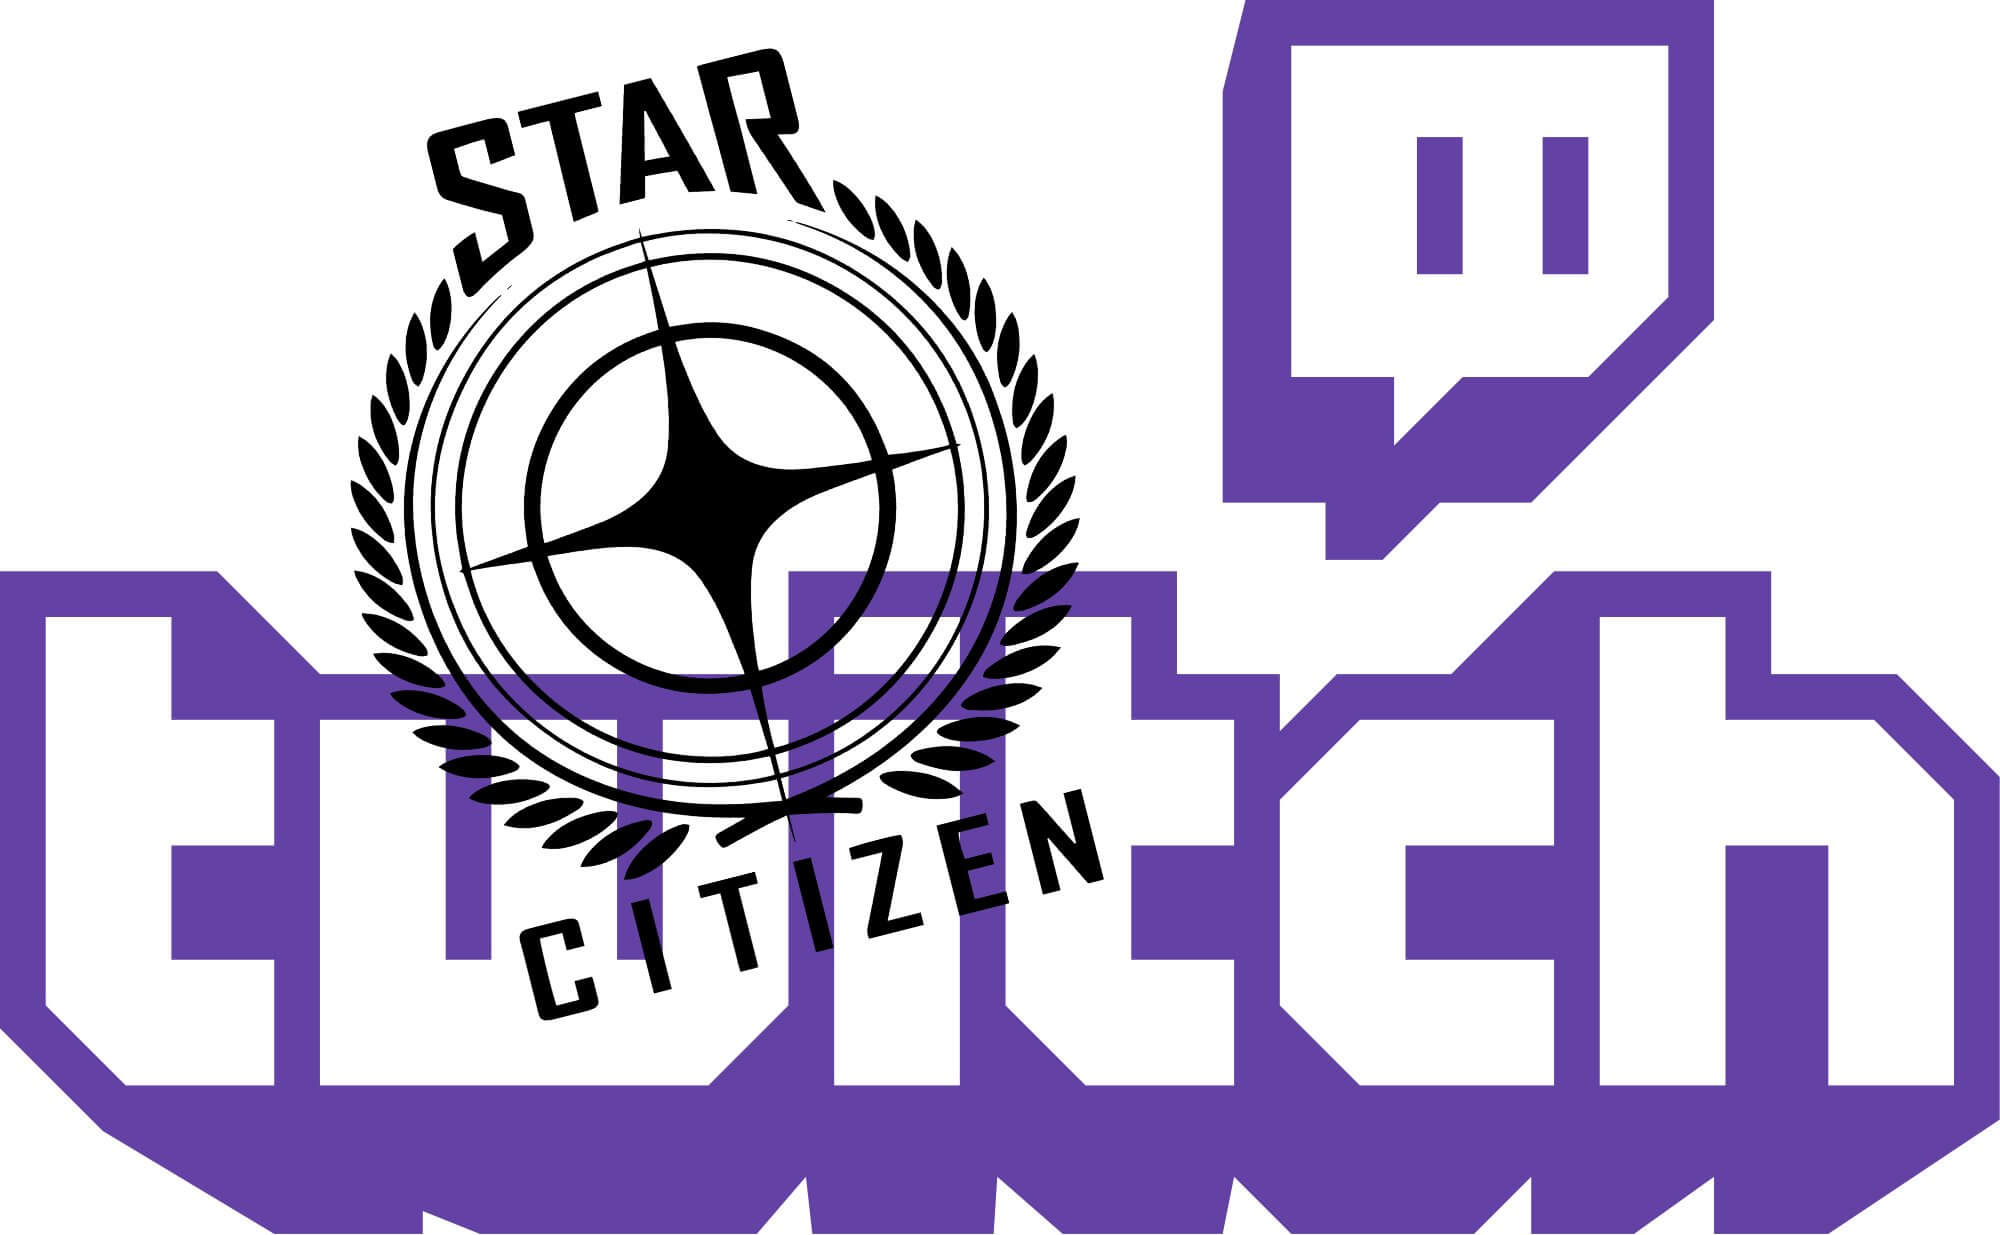 Star Citizen Twitch Streamers